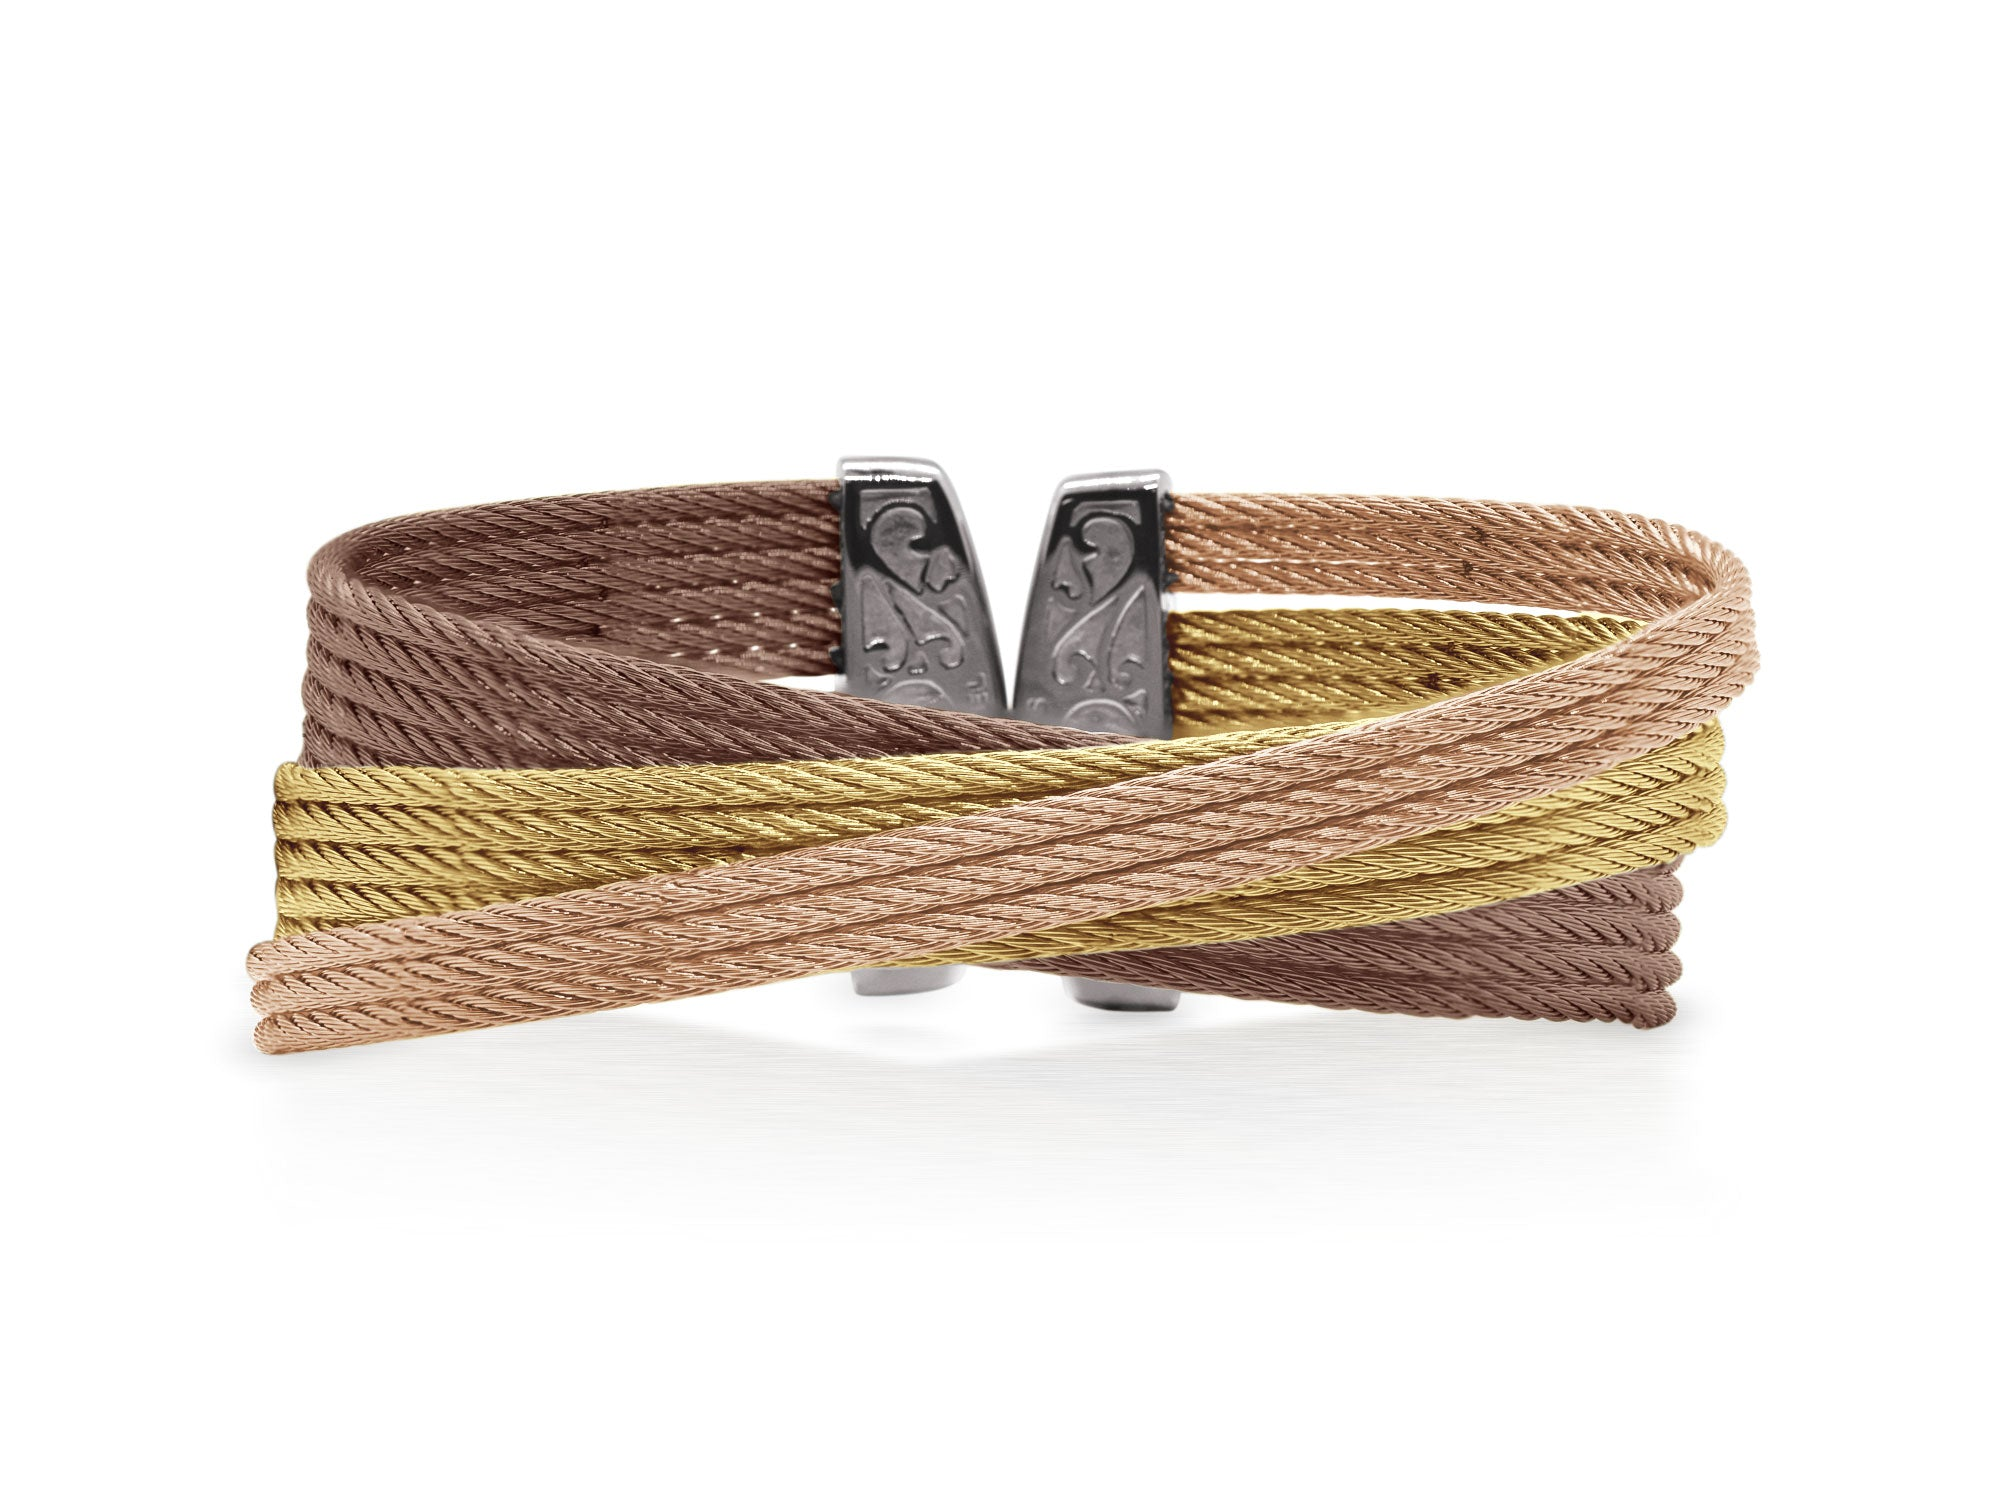 ALOR Classique Multi-Strand, Multi-Colored Bangle with Angled Design